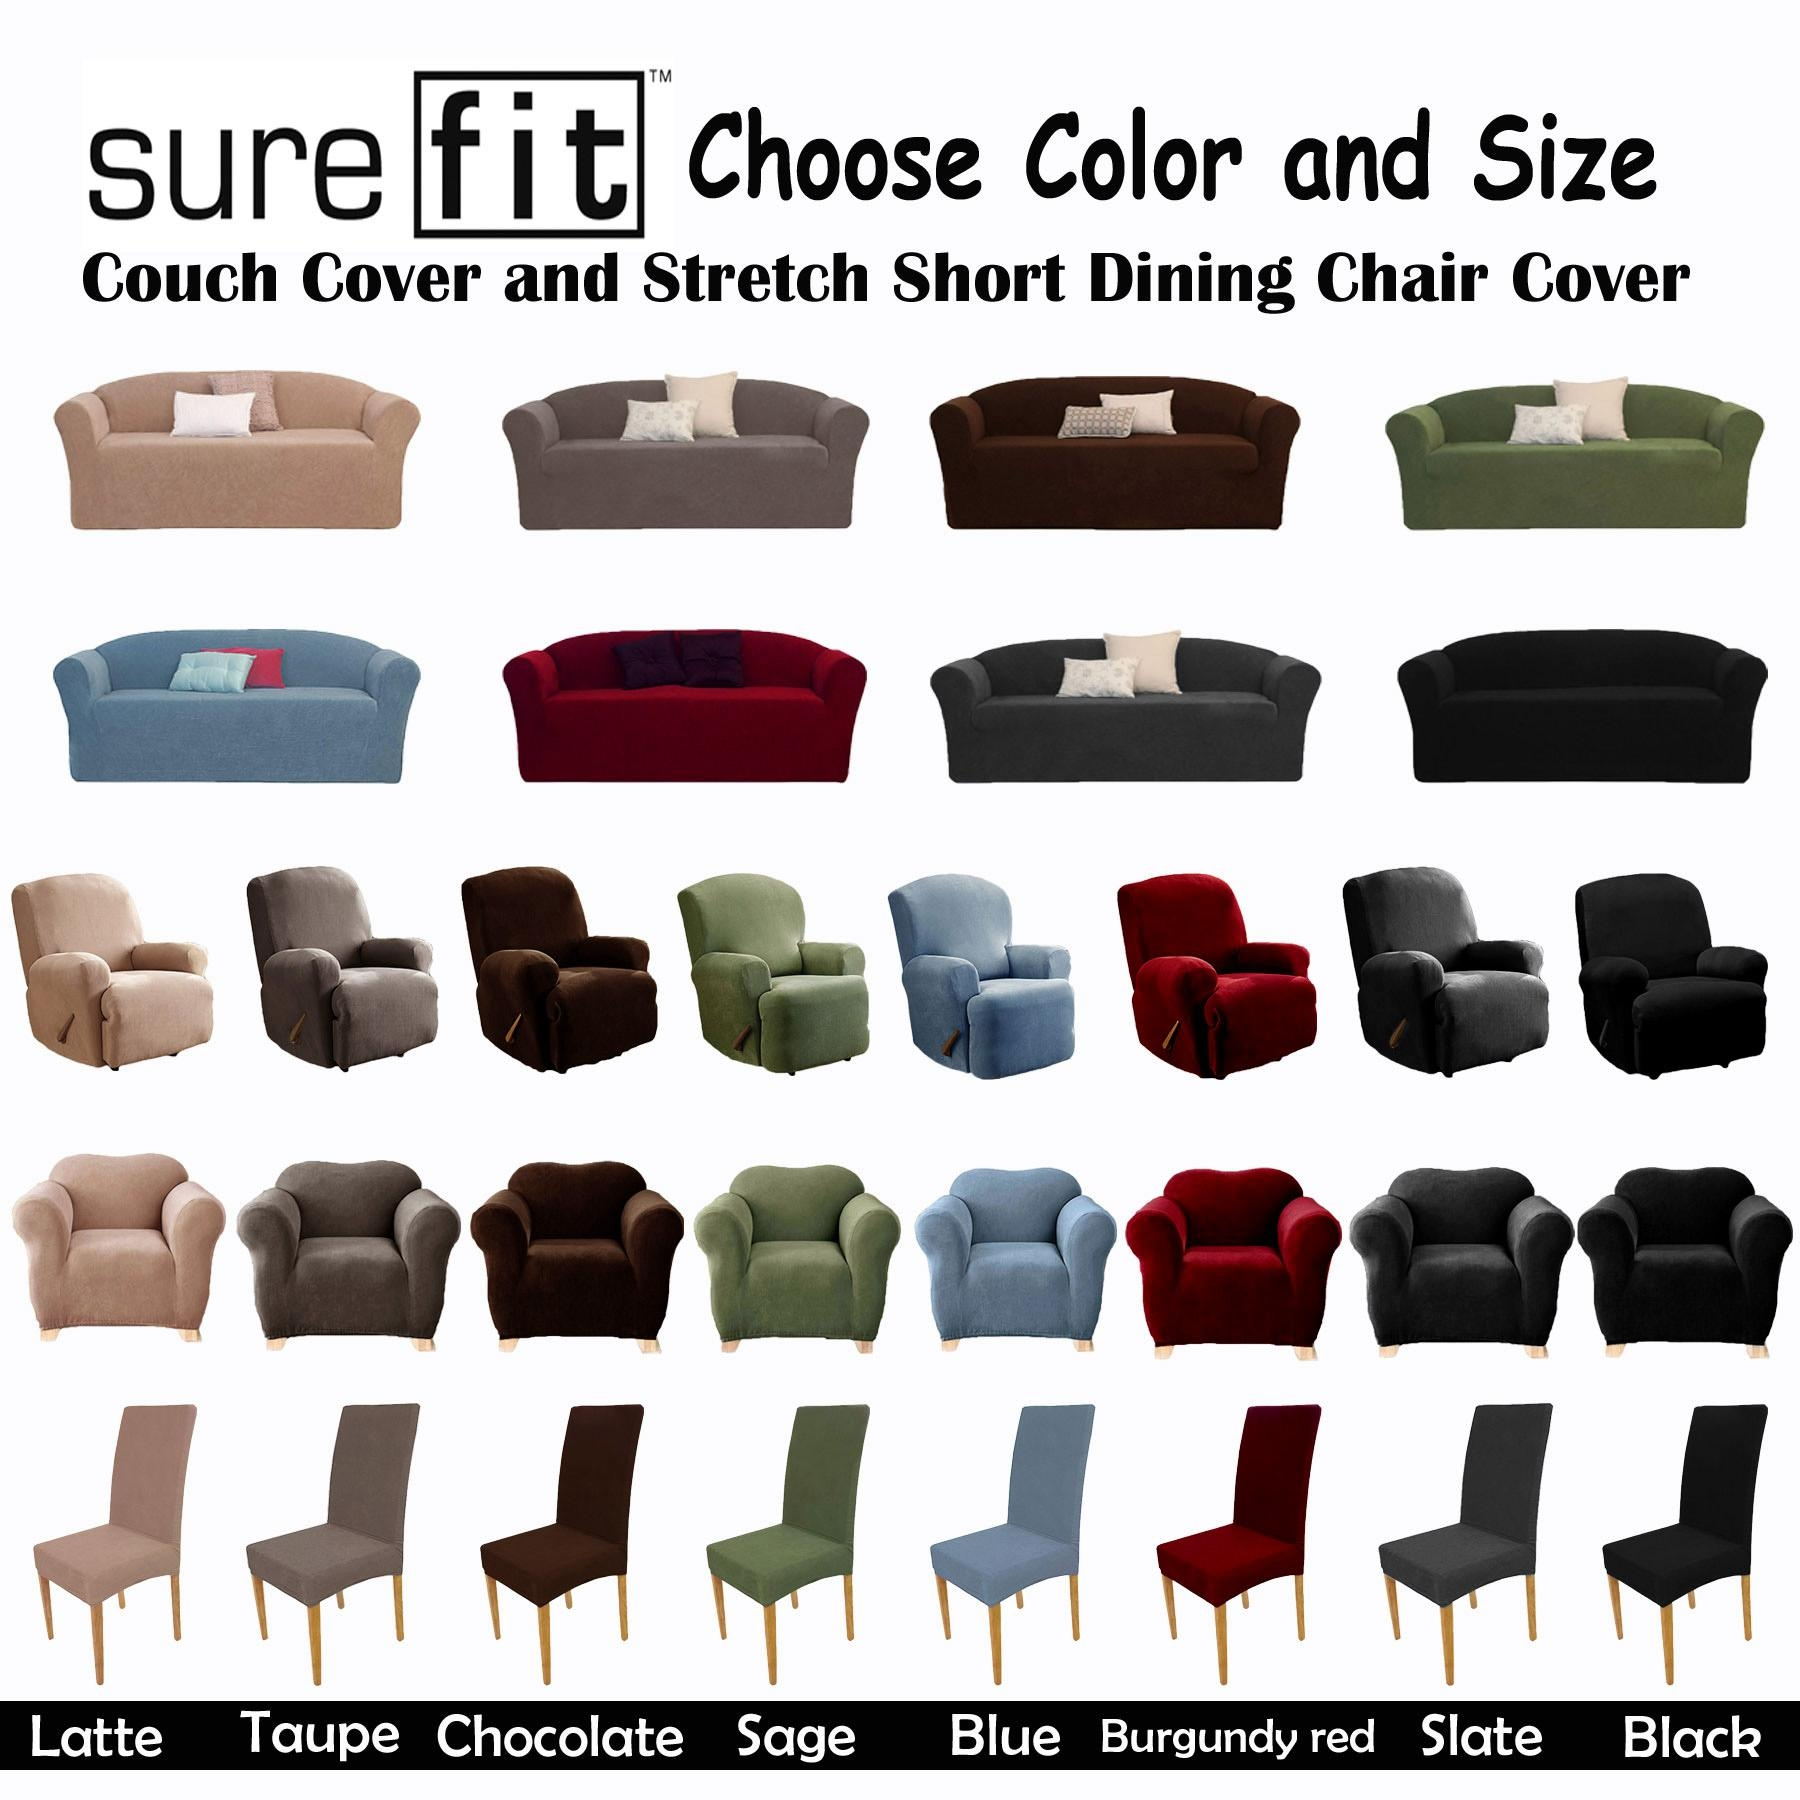 Stretch Surefit Couch Cover – 1 Seater, 1 Seater Recliner, 2 Regarding Stretch Covers For Recliners (View 20 of 20)